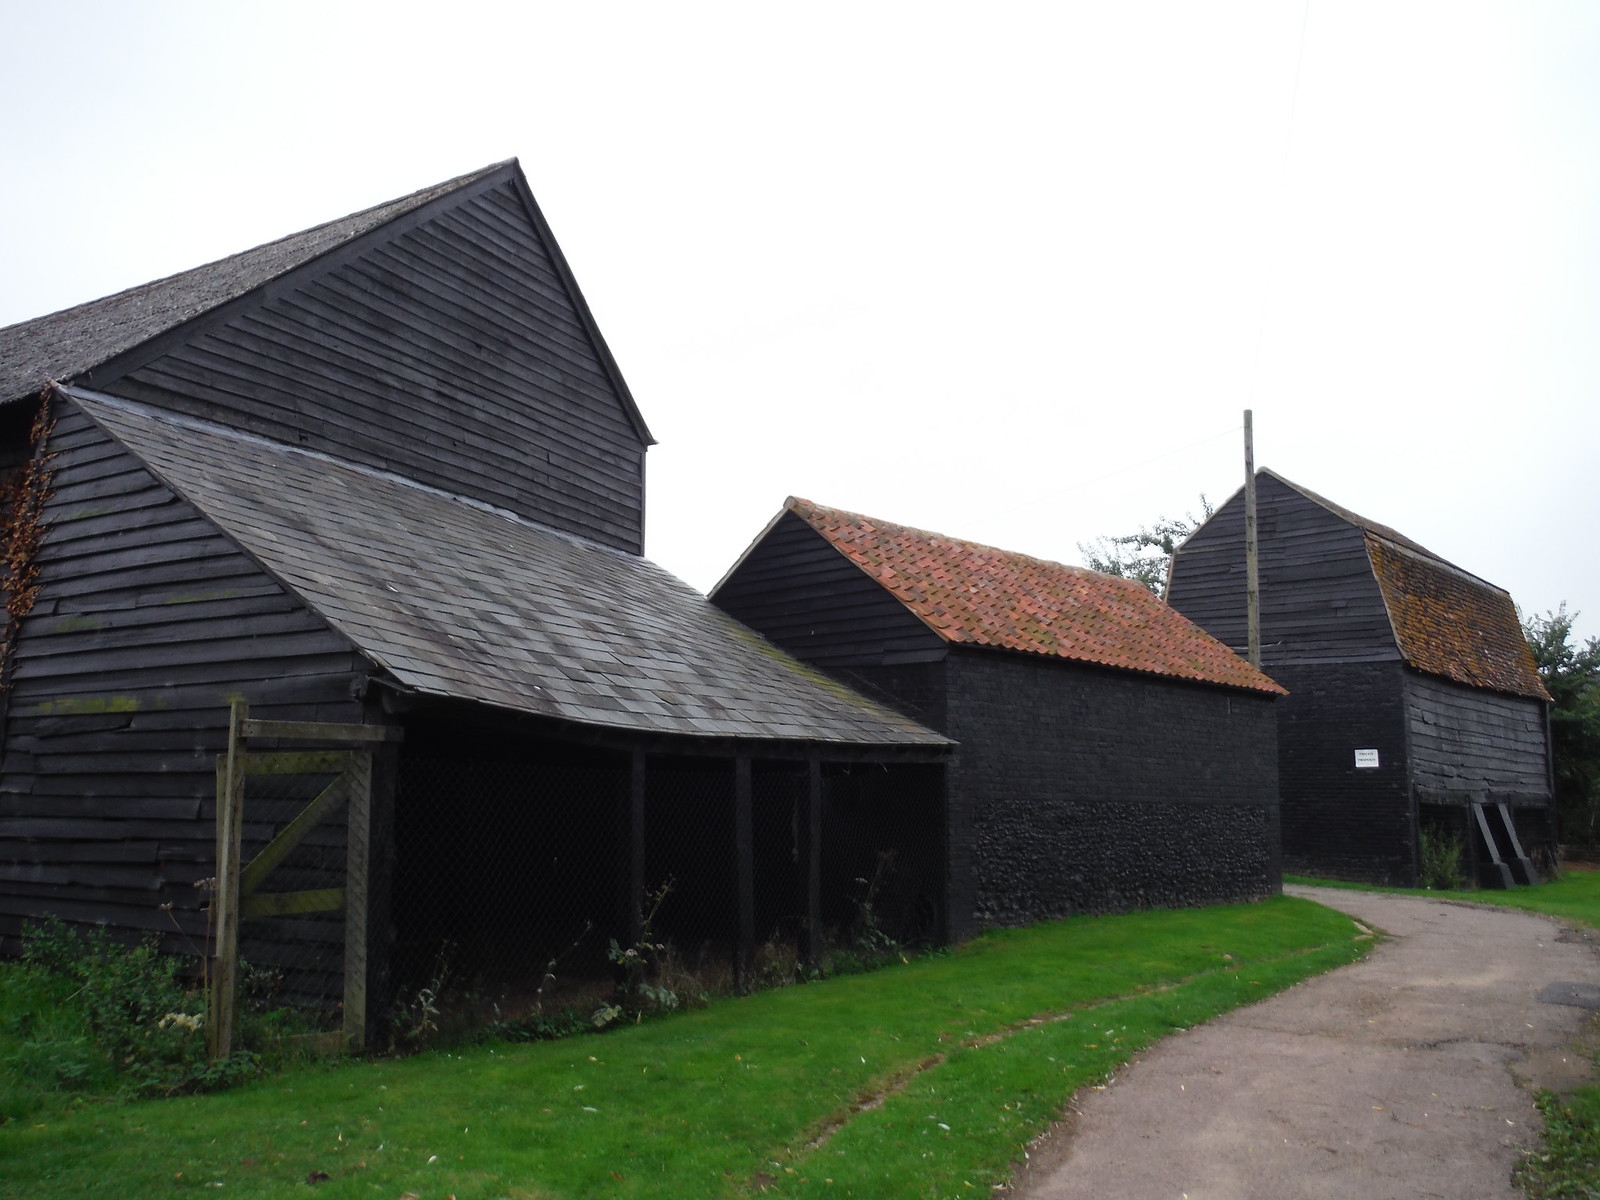 Farm in Sawbridgeworth SWC Walk 164 Roydon to Sawbridgeworth via Henry Moore Foundation